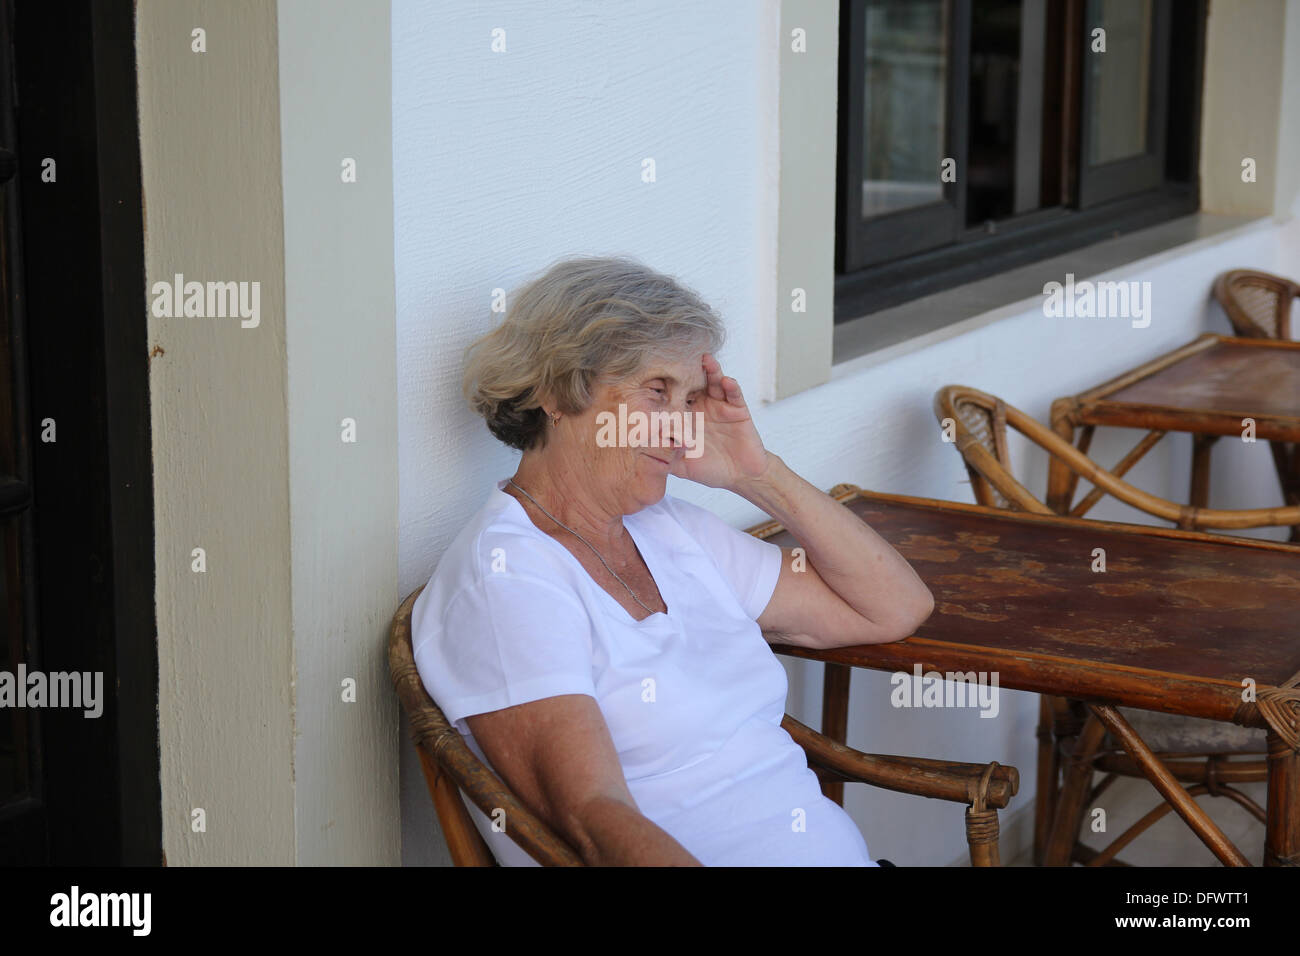 Smiling elderly woman sitting at the table - Stock Image